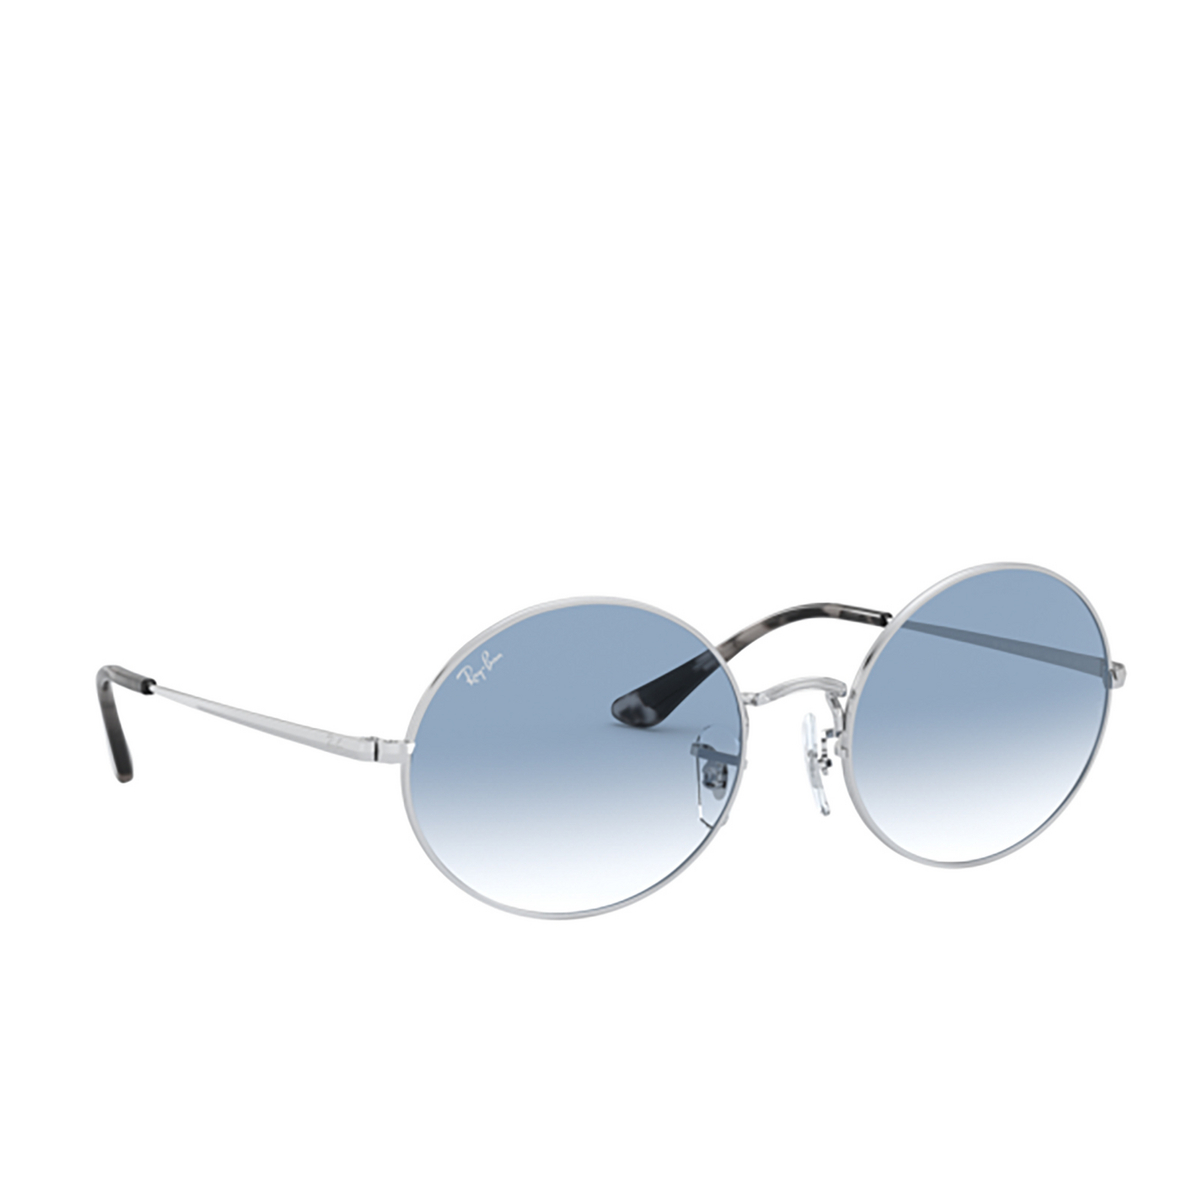 Ray-Ban® Oval Sunglasses: Oval RB1970 color Silver 91493F - three-quarters view.